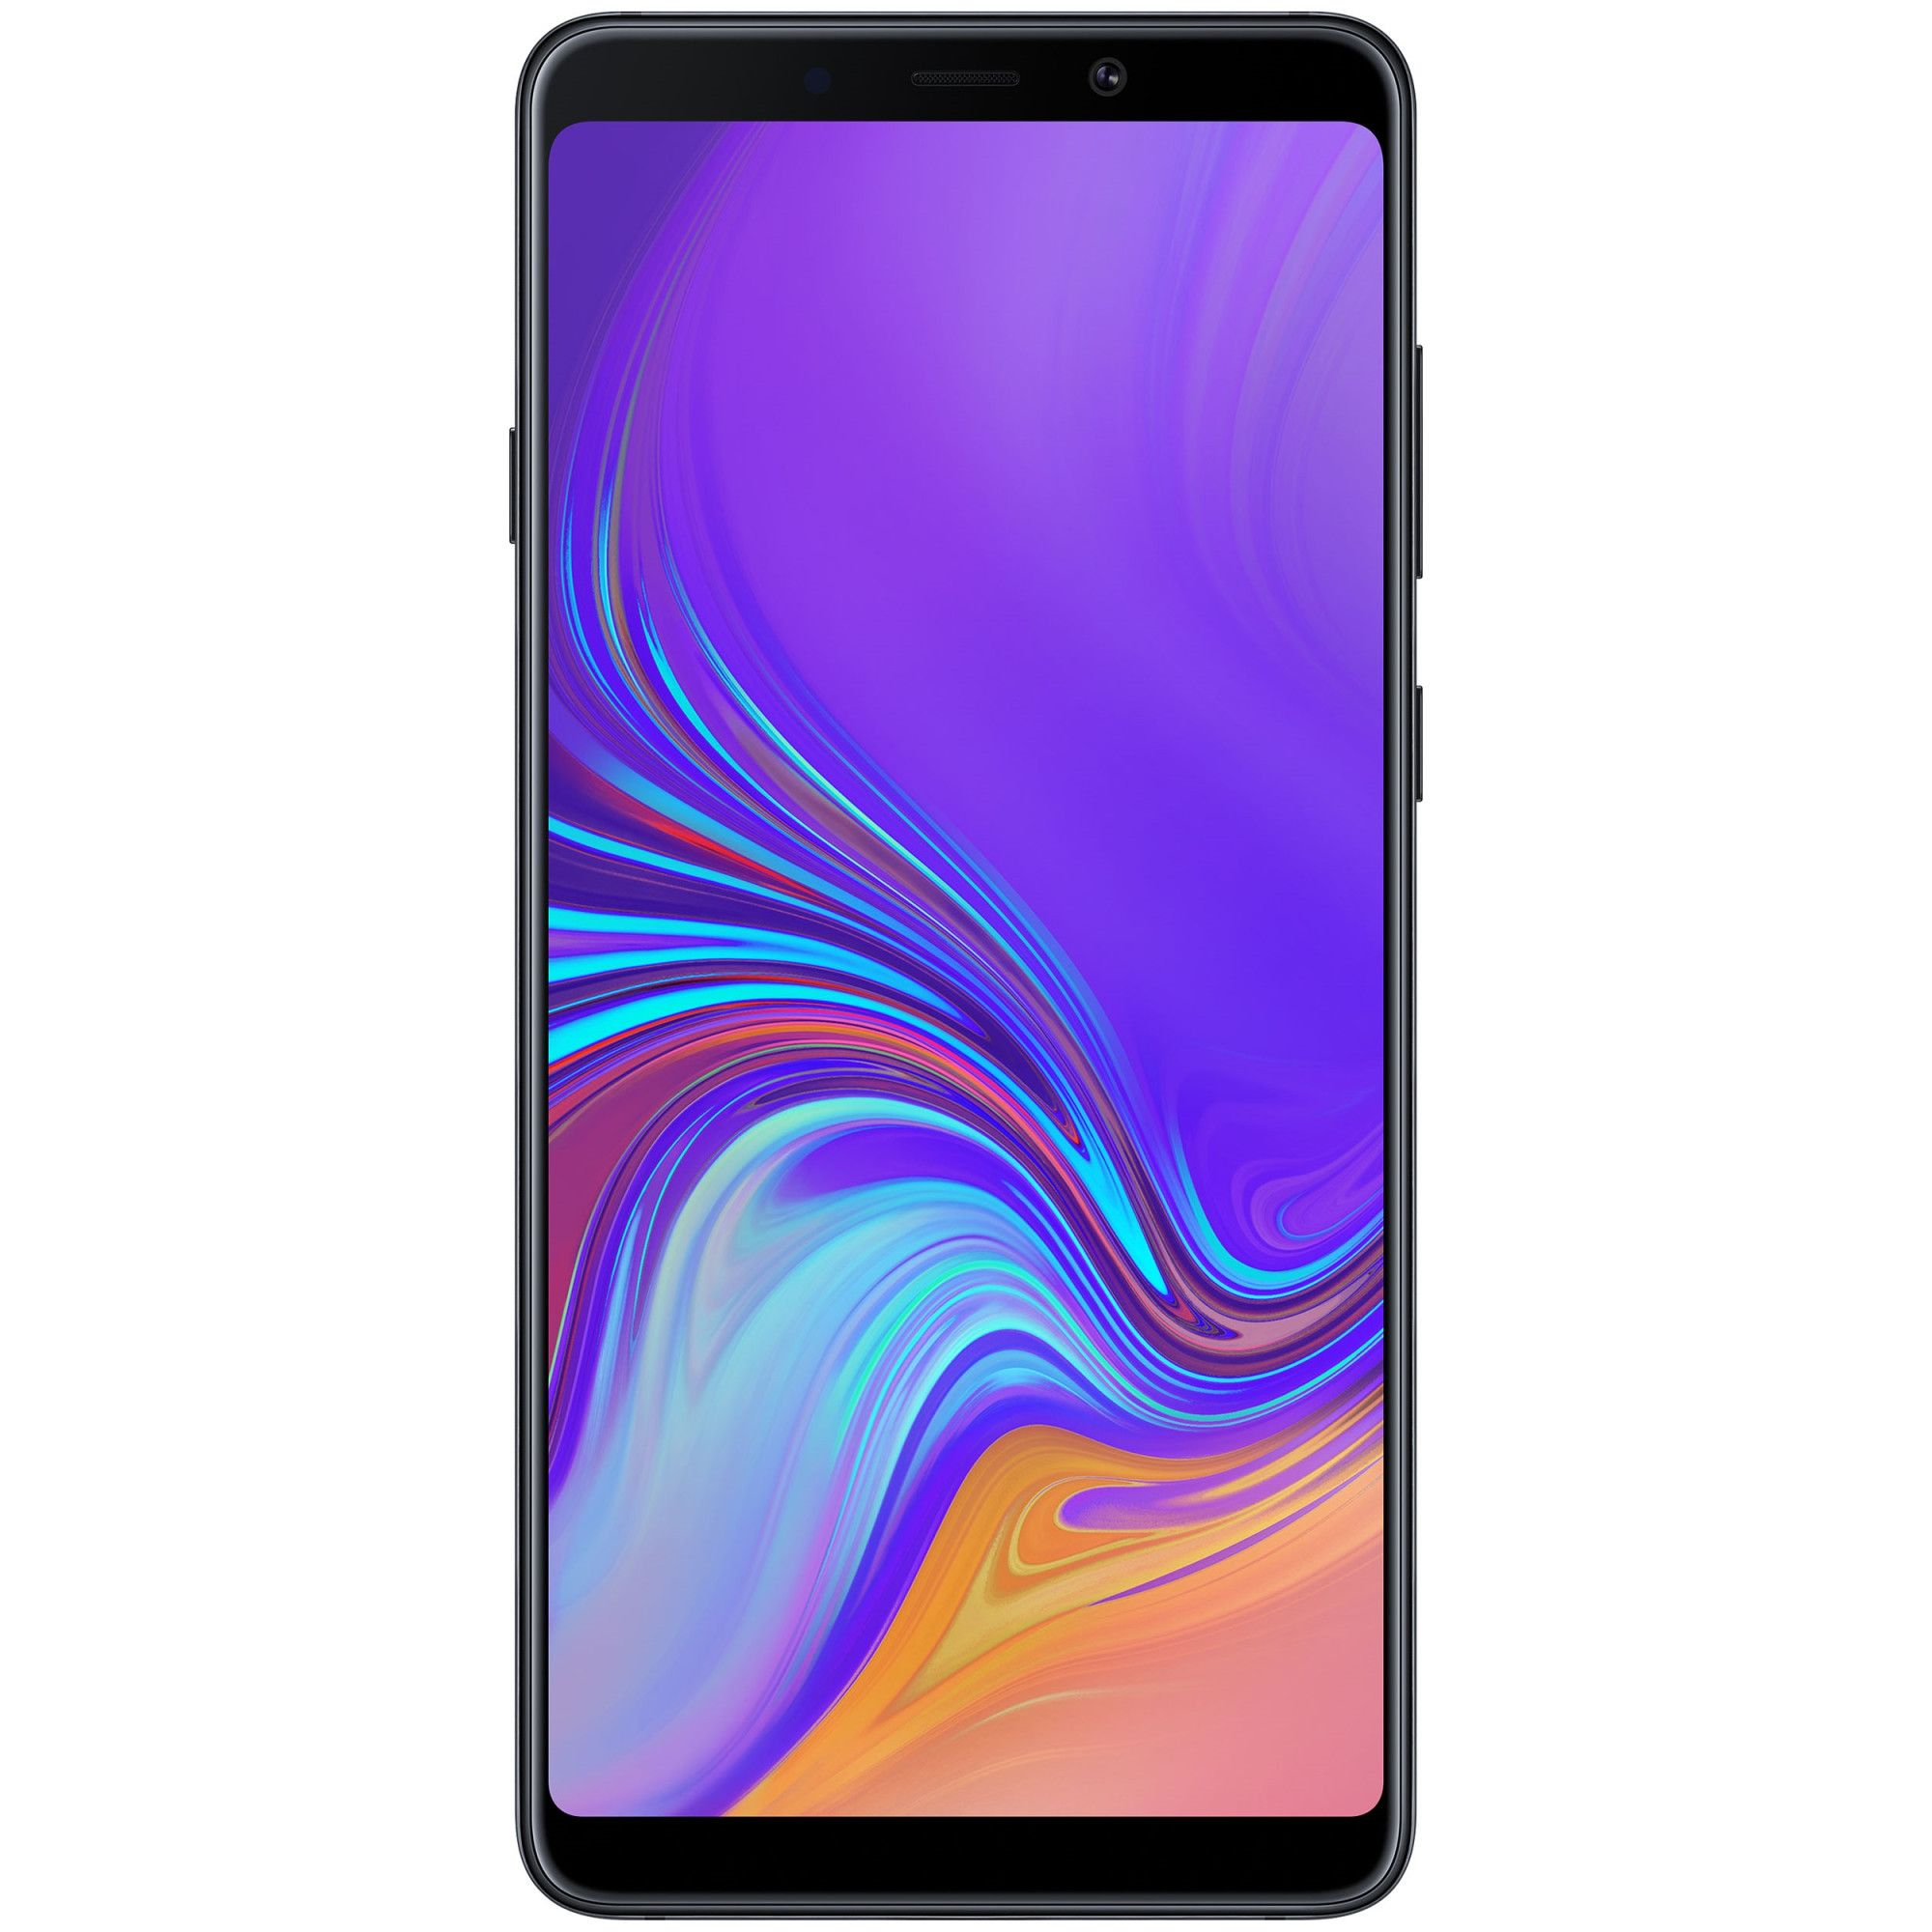 Telefon Mobil Samsung A920 Galaxy A9 (2018) 128GB Flash 6GB RAM Single SIM 4G Caviar Black